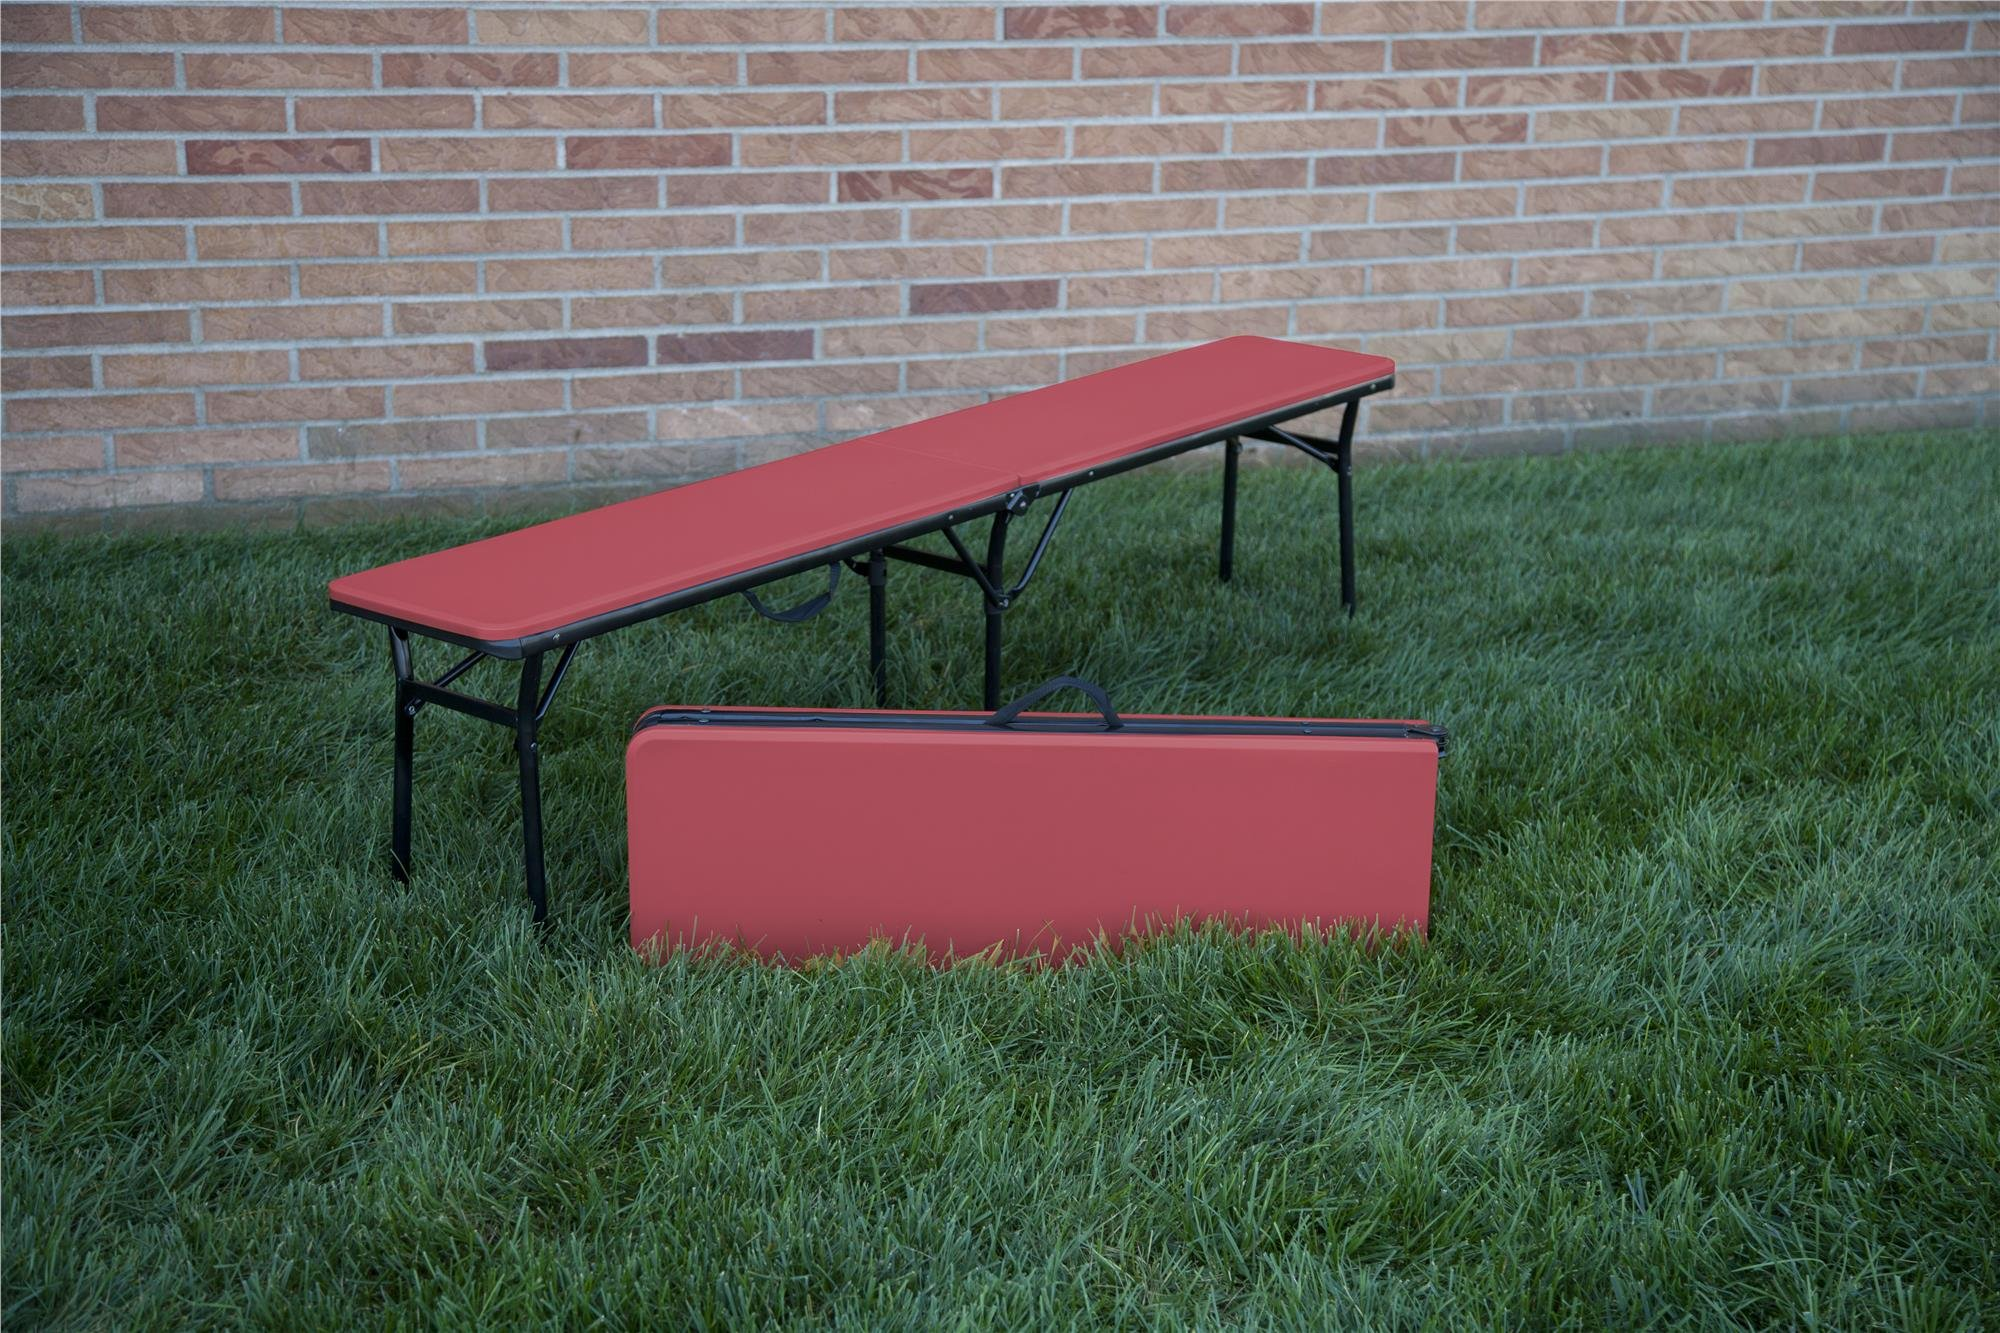 COSCO 6 ft. Indoor Outdoor Center Fold Tailgate Bench with Carrying Handle, Red Bench Top, Black Frame, 2-pack by Cosco Outdoor Living (Image #11)